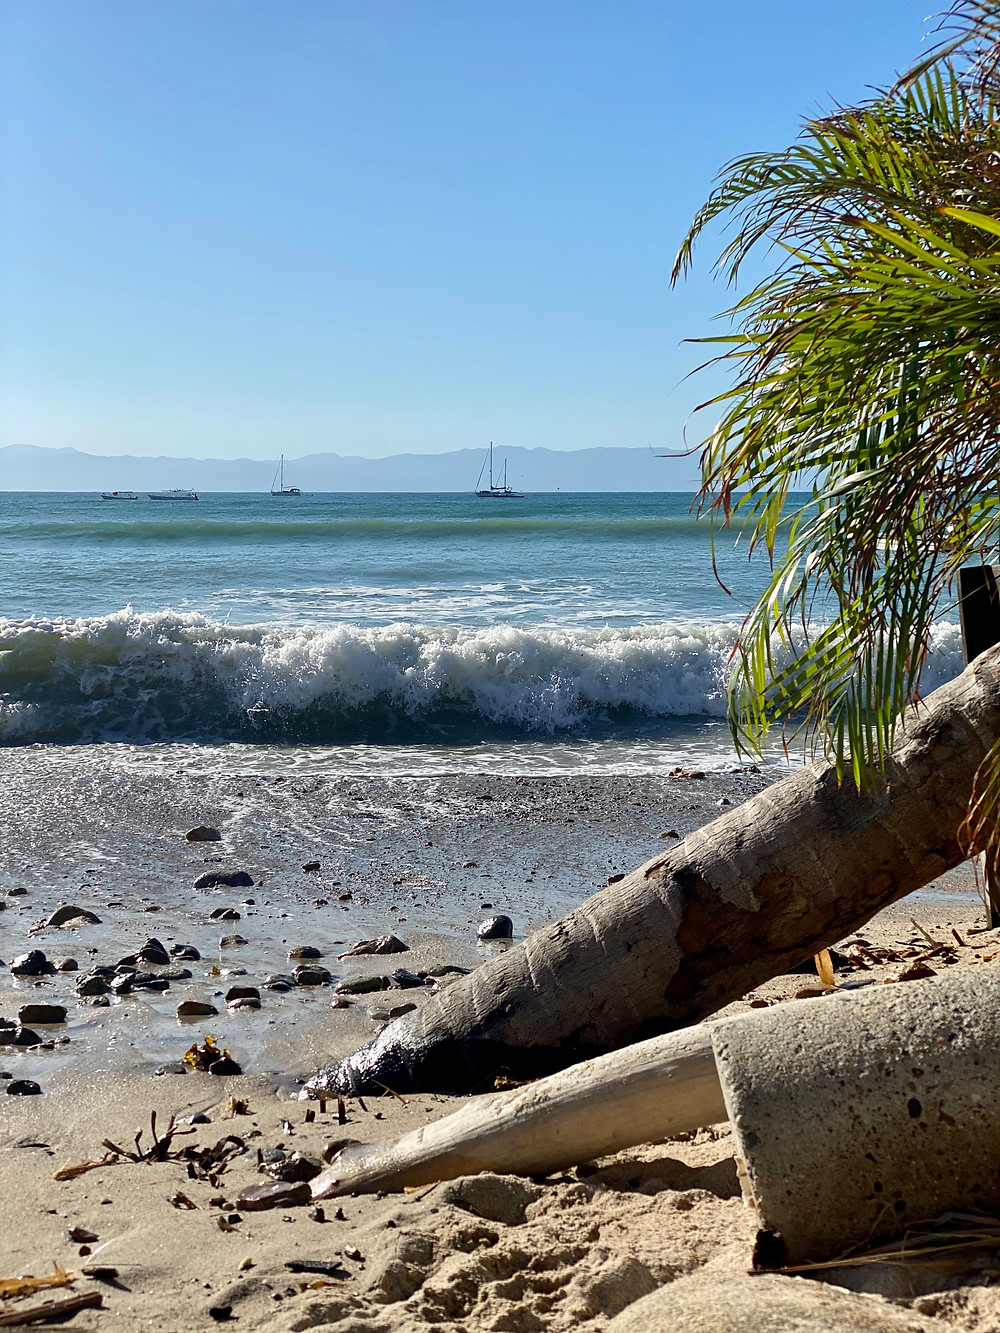 Sandy beach in Mexico